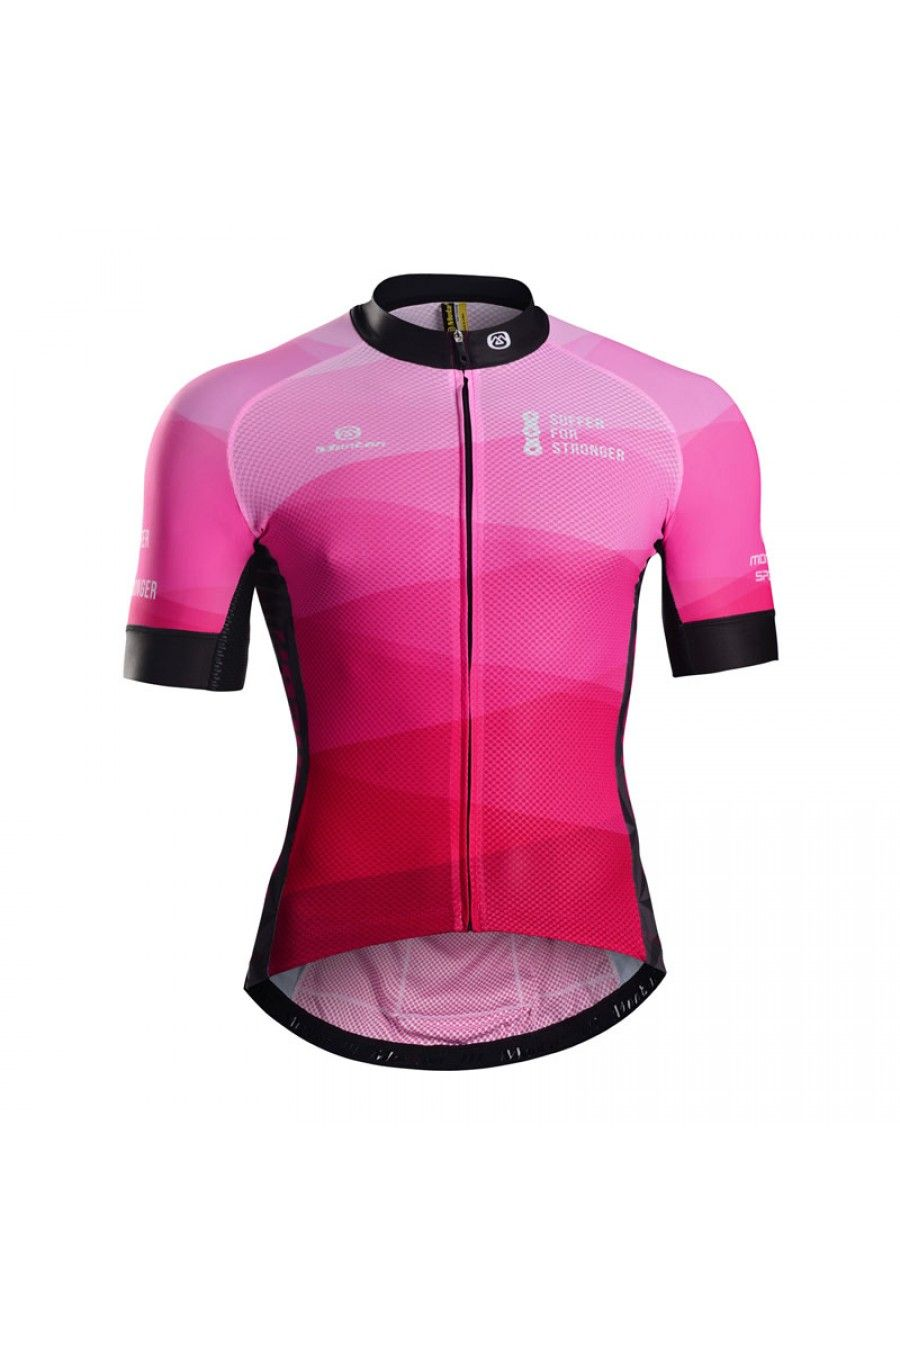 Love This Pink Cycling Jersey Cycling Jersey Design Cycling Clothing And Equipment Cycling Outfit